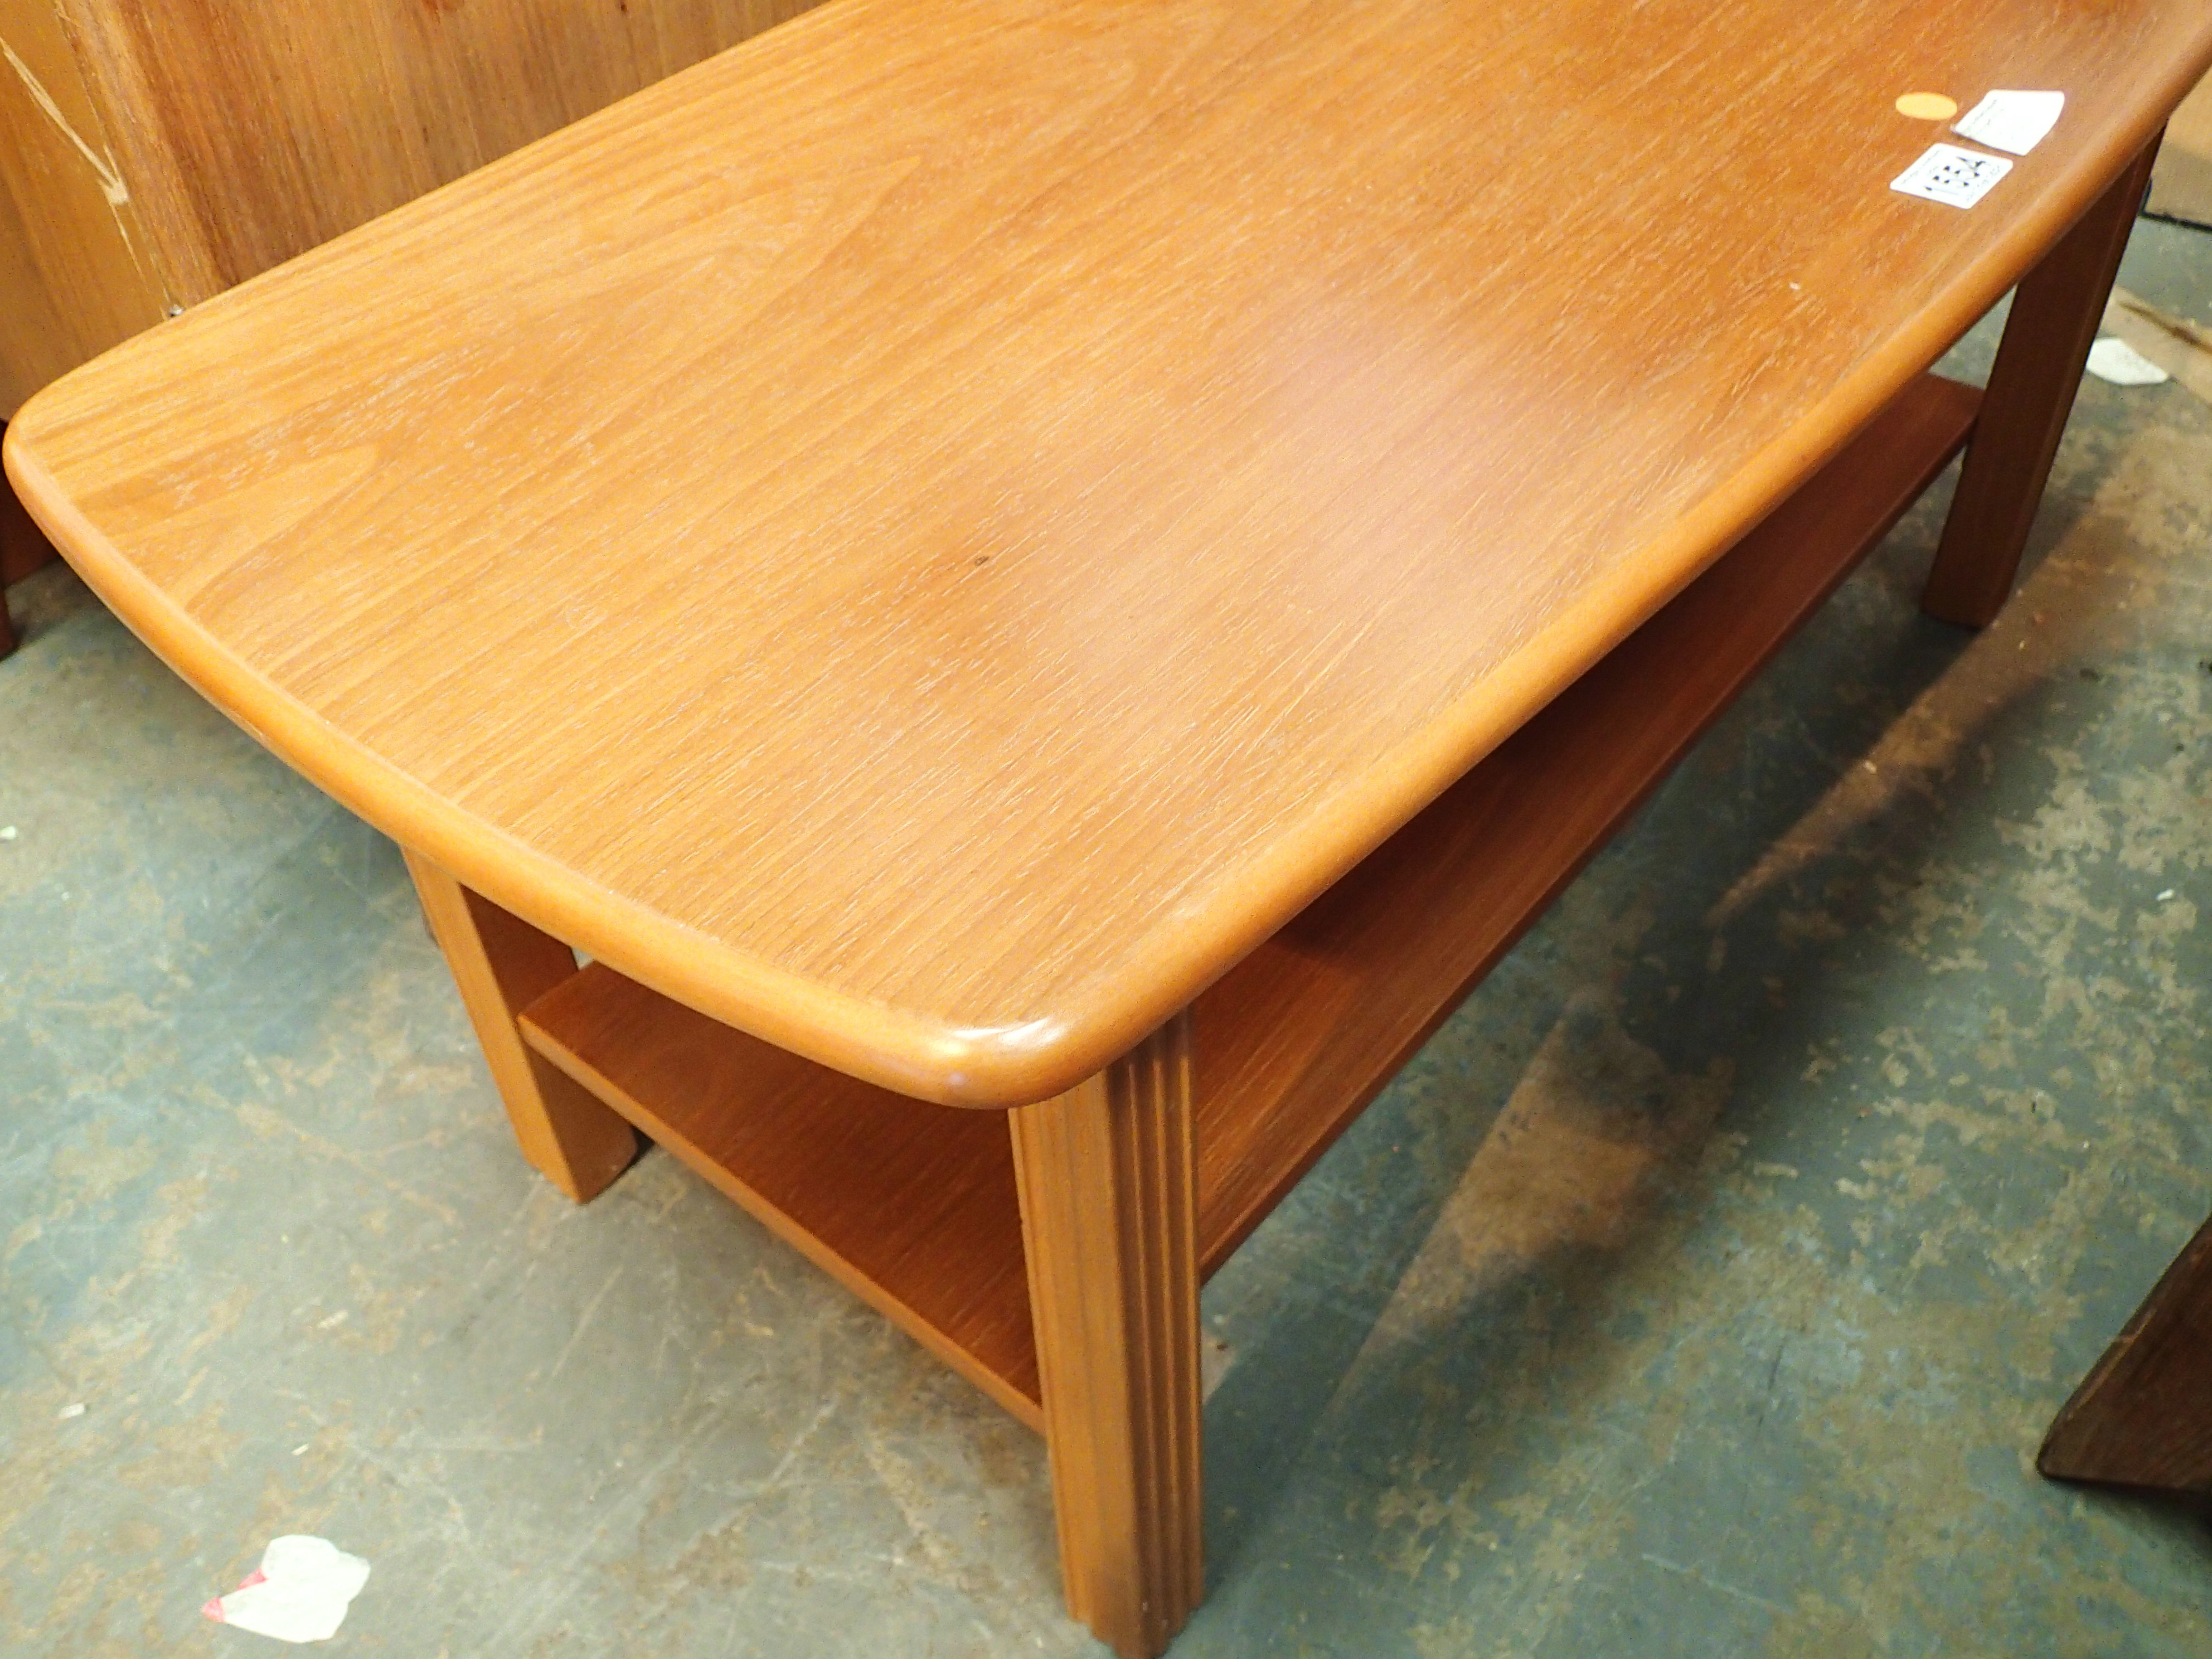 Retro oak coffee table. Not available for in-house P&P, contact Paul O'Hea at Mailboxes on 01925